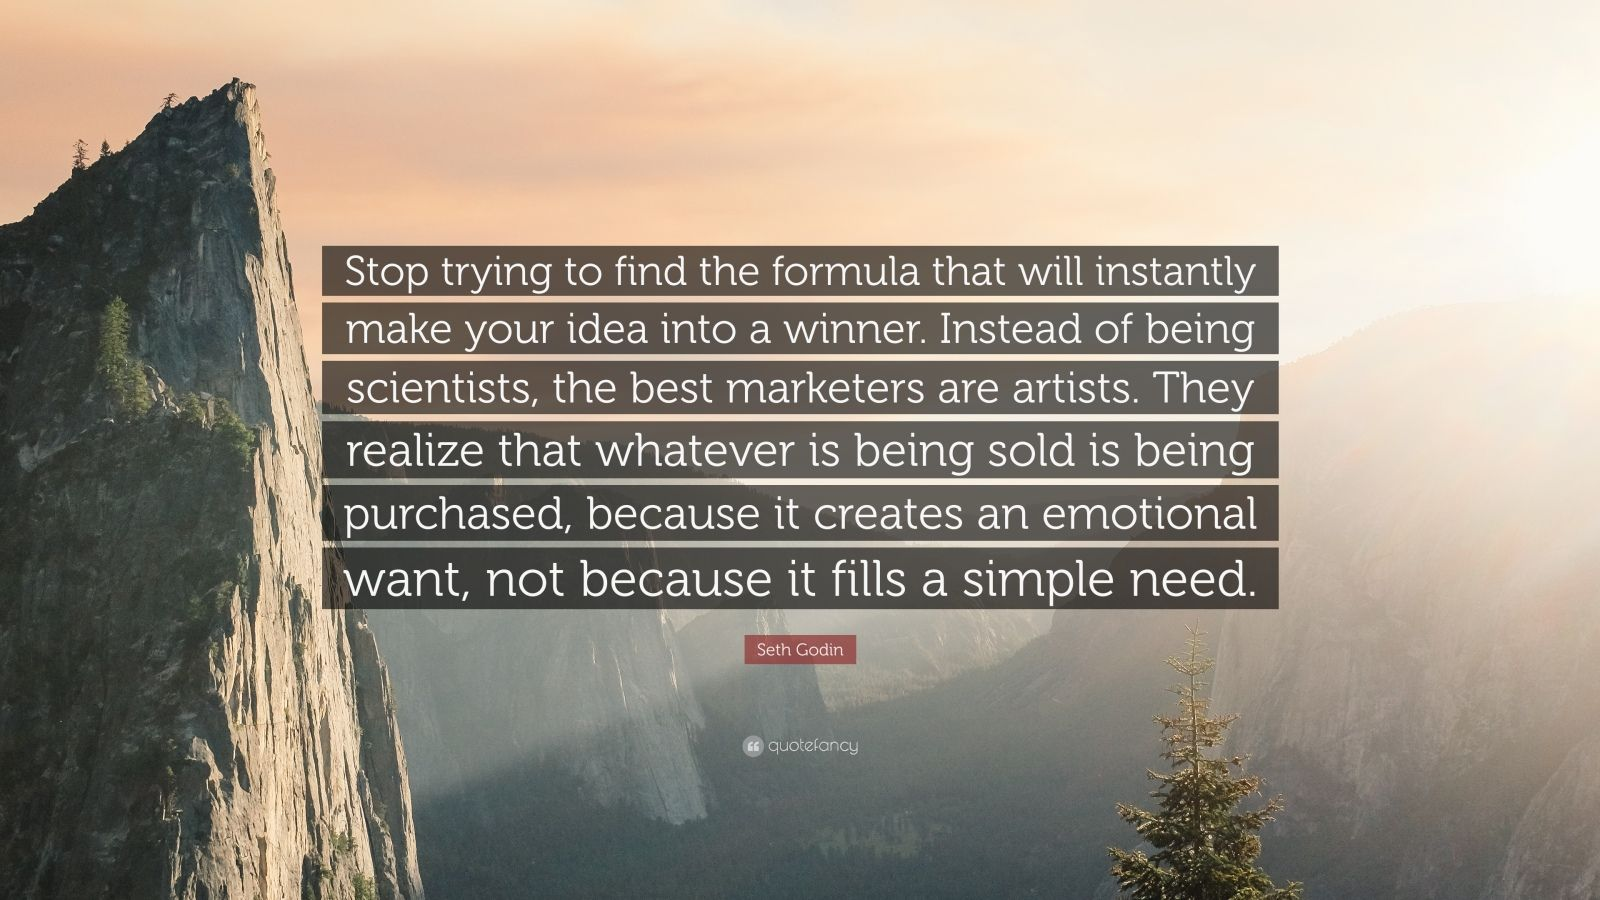 """Seth Godin Quote: """"Stop trying to find the formula that will instantly make your idea into a winner. Instead of being scientists, the best marketers are artists. They realize that whatever is being sold is being purchased, because it creates an emotional want, not because it fills a simple need."""""""